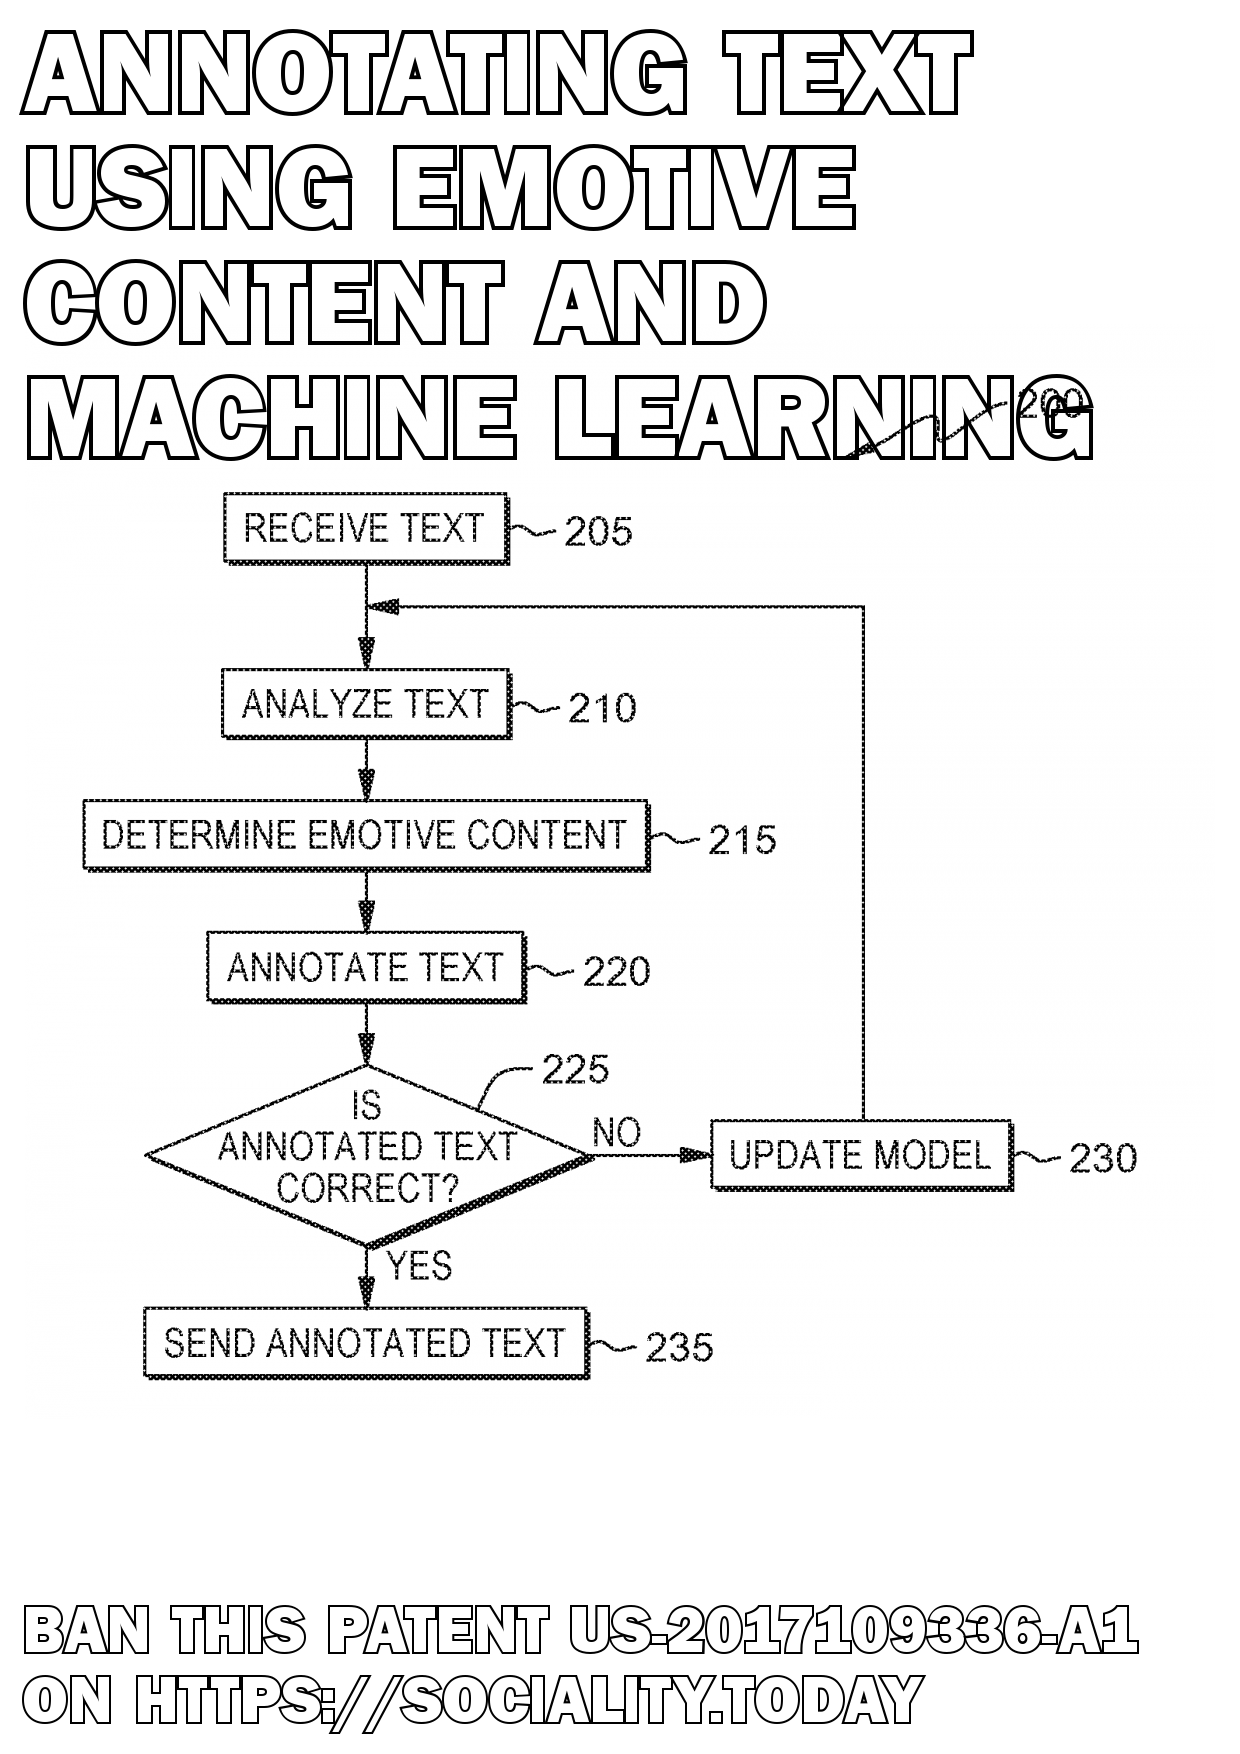 Annotating text using emotive content and machine learning  - US-2017109336-A1